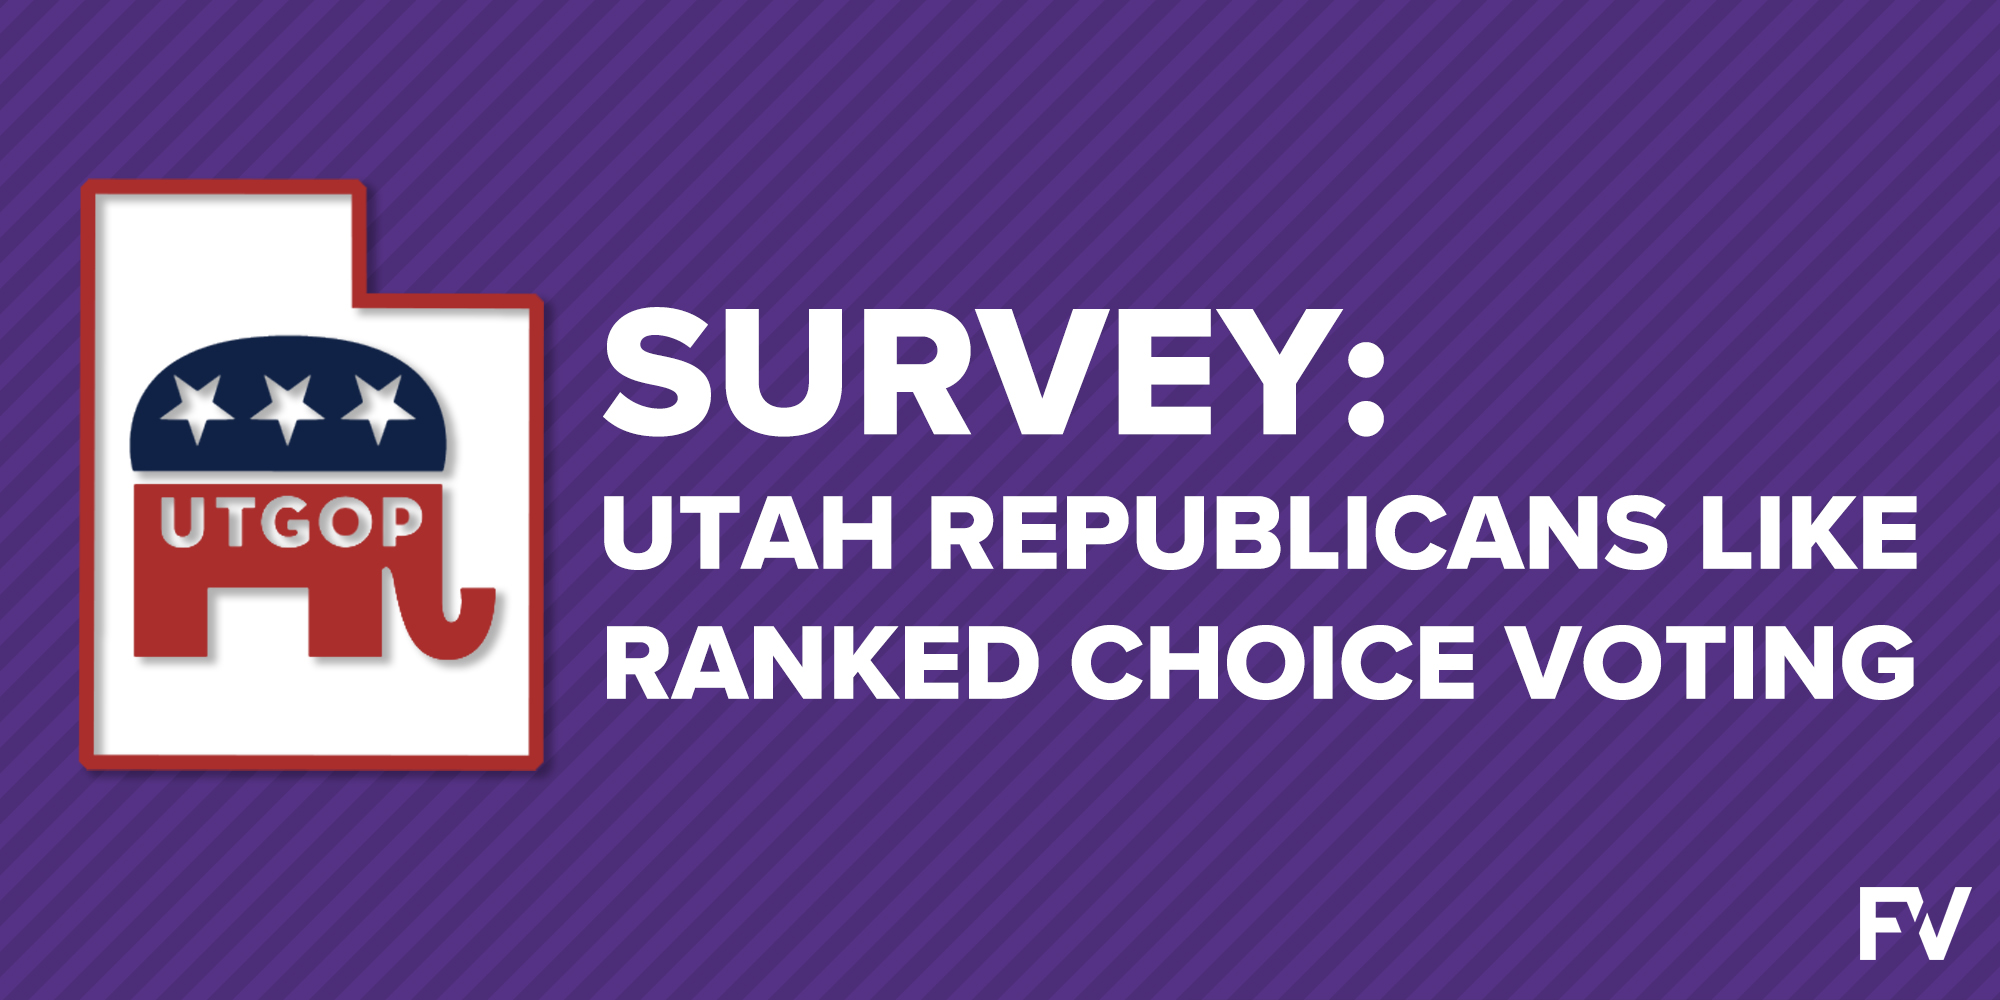 Ranked Choice Voting Earns High Marks from Utah Republicans